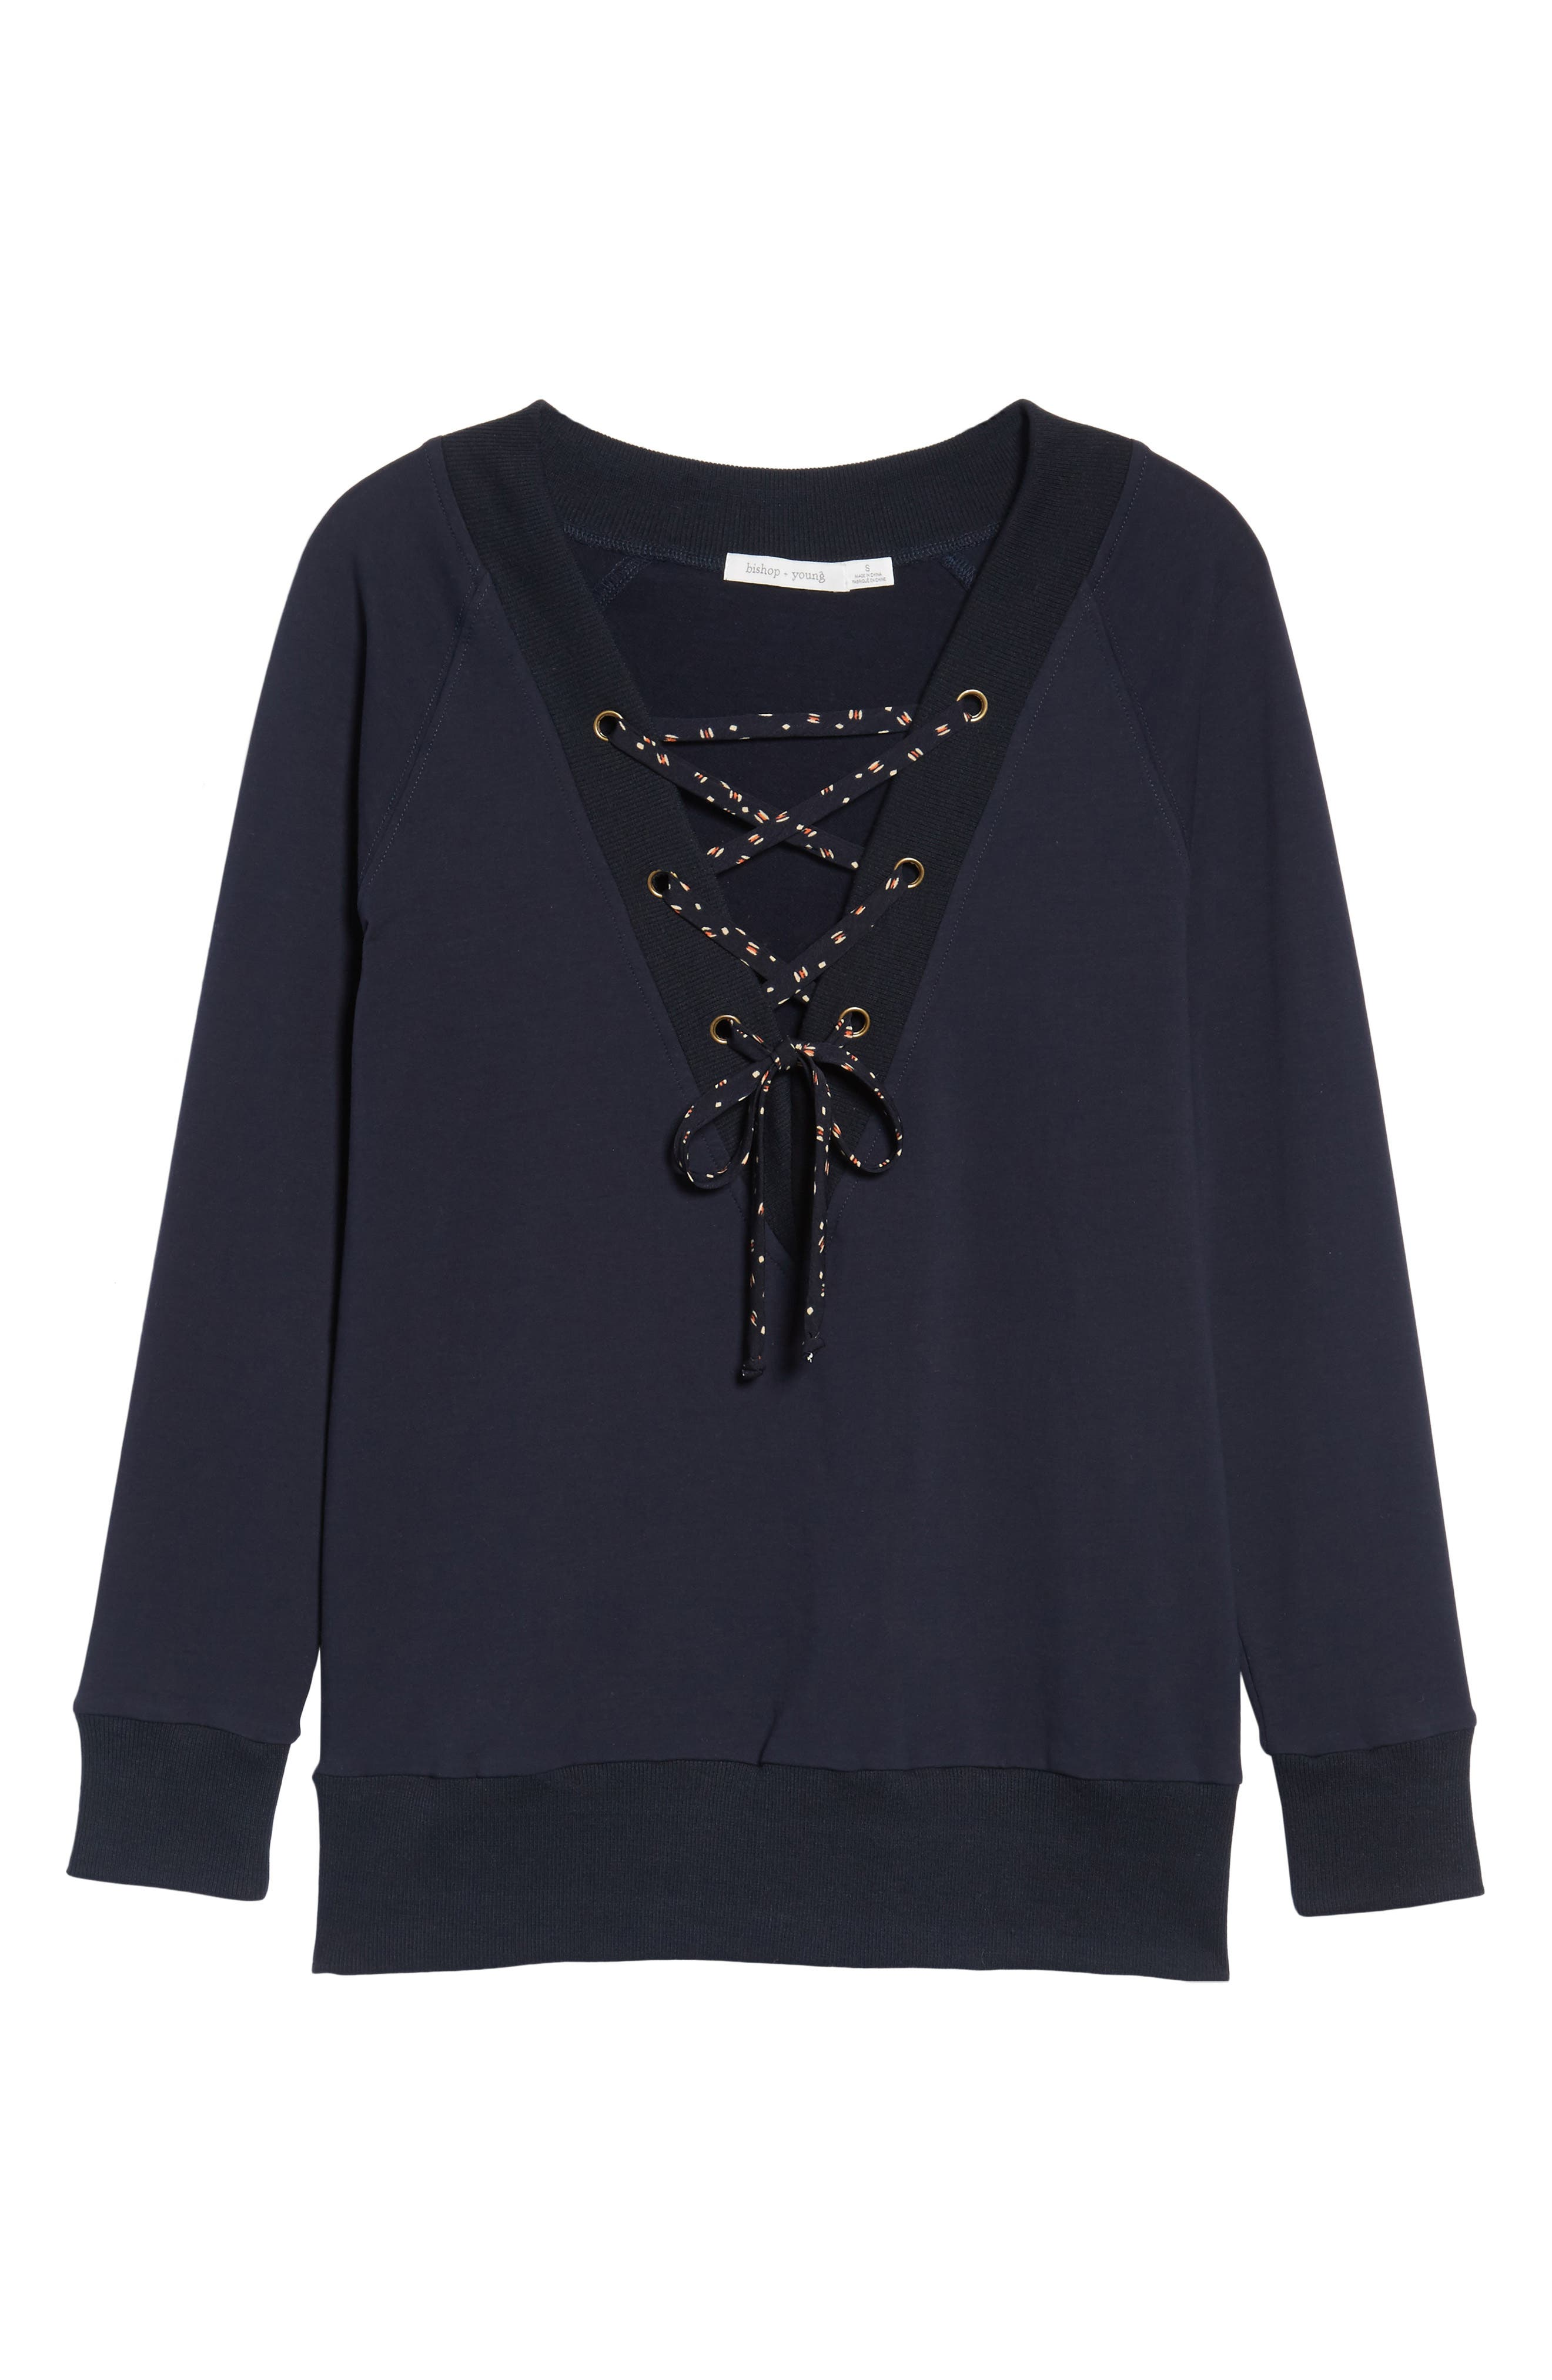 Bishop + Young Teri Lace-Up Top,                             Alternate thumbnail 6, color,                             Navy